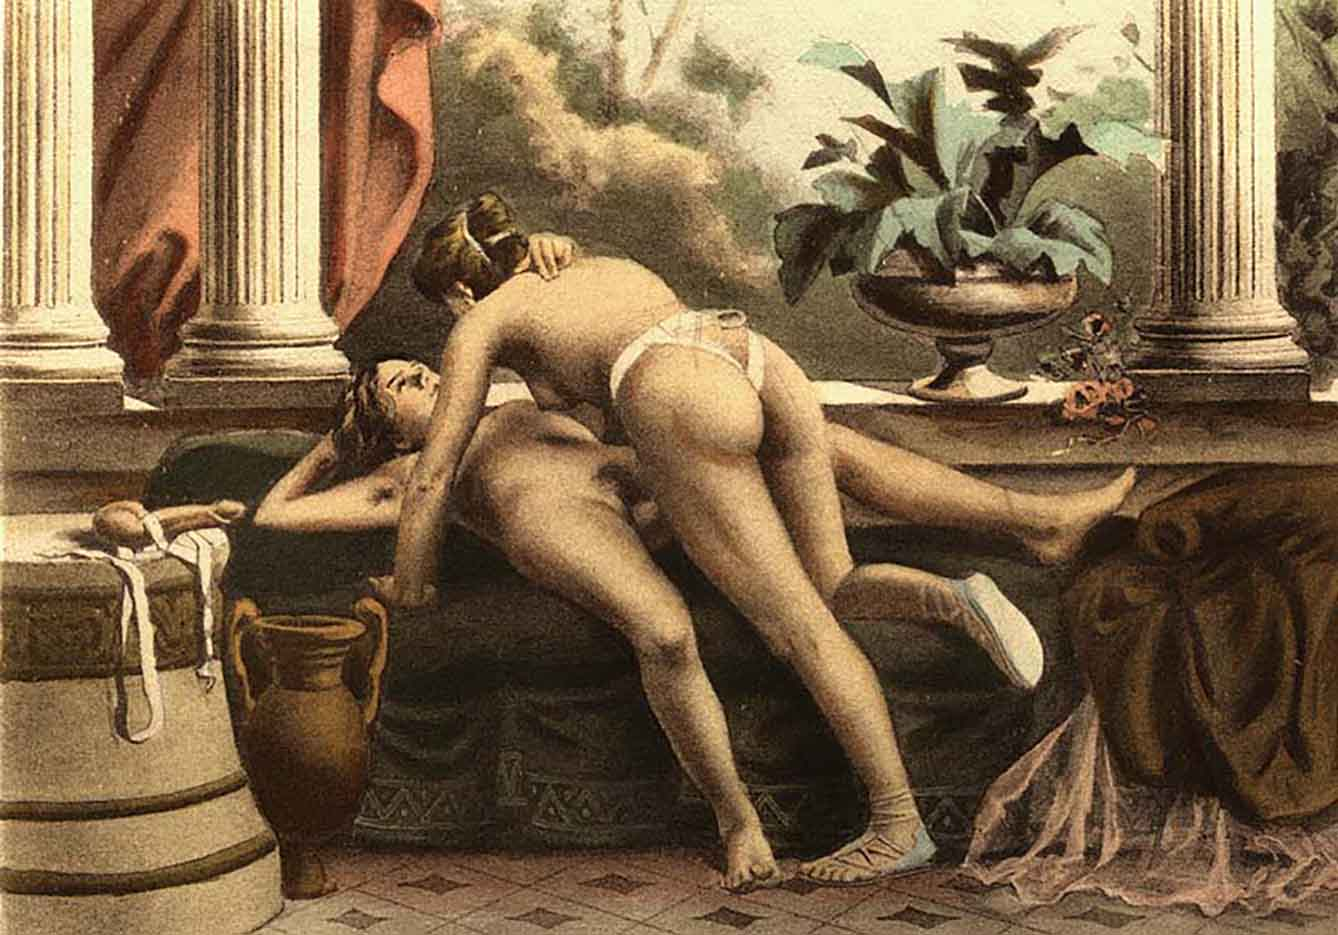 Sexual curiosities in ancient greece